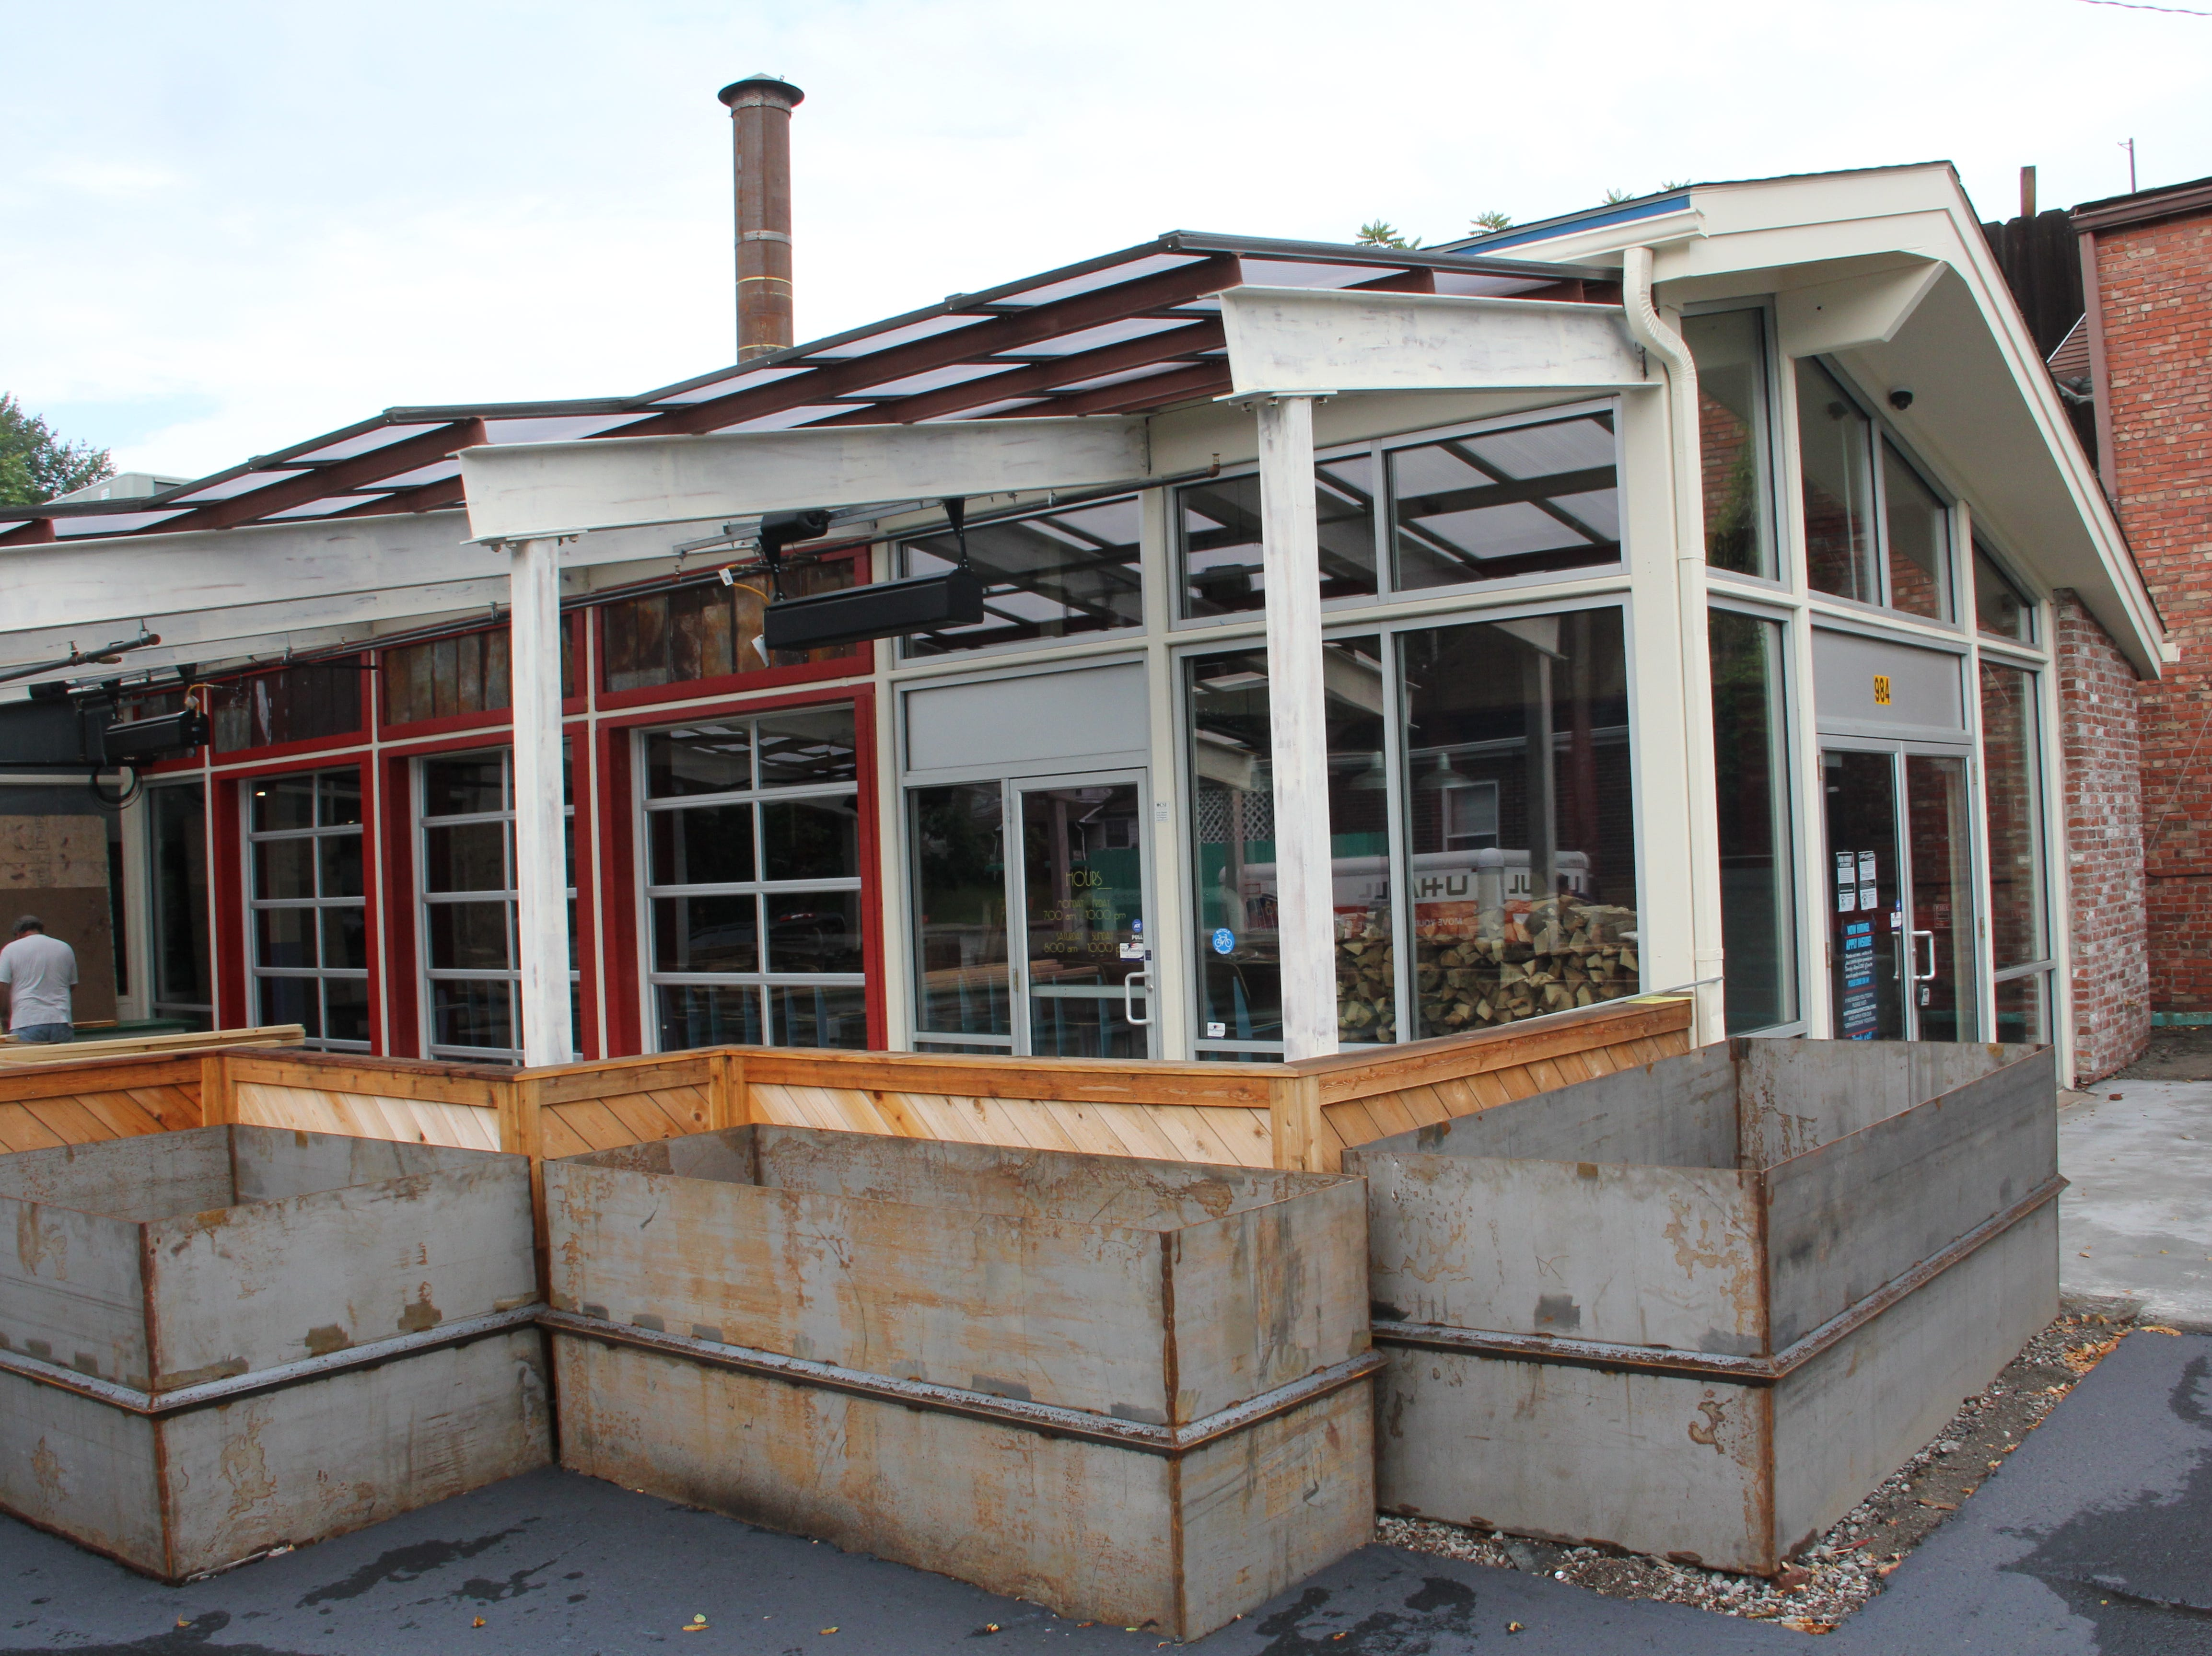 The new Martin's Bar-B-Que will open in the Highlands neighborhood in a few weeks, owner Pat Martin said. Construction is still ongoing.